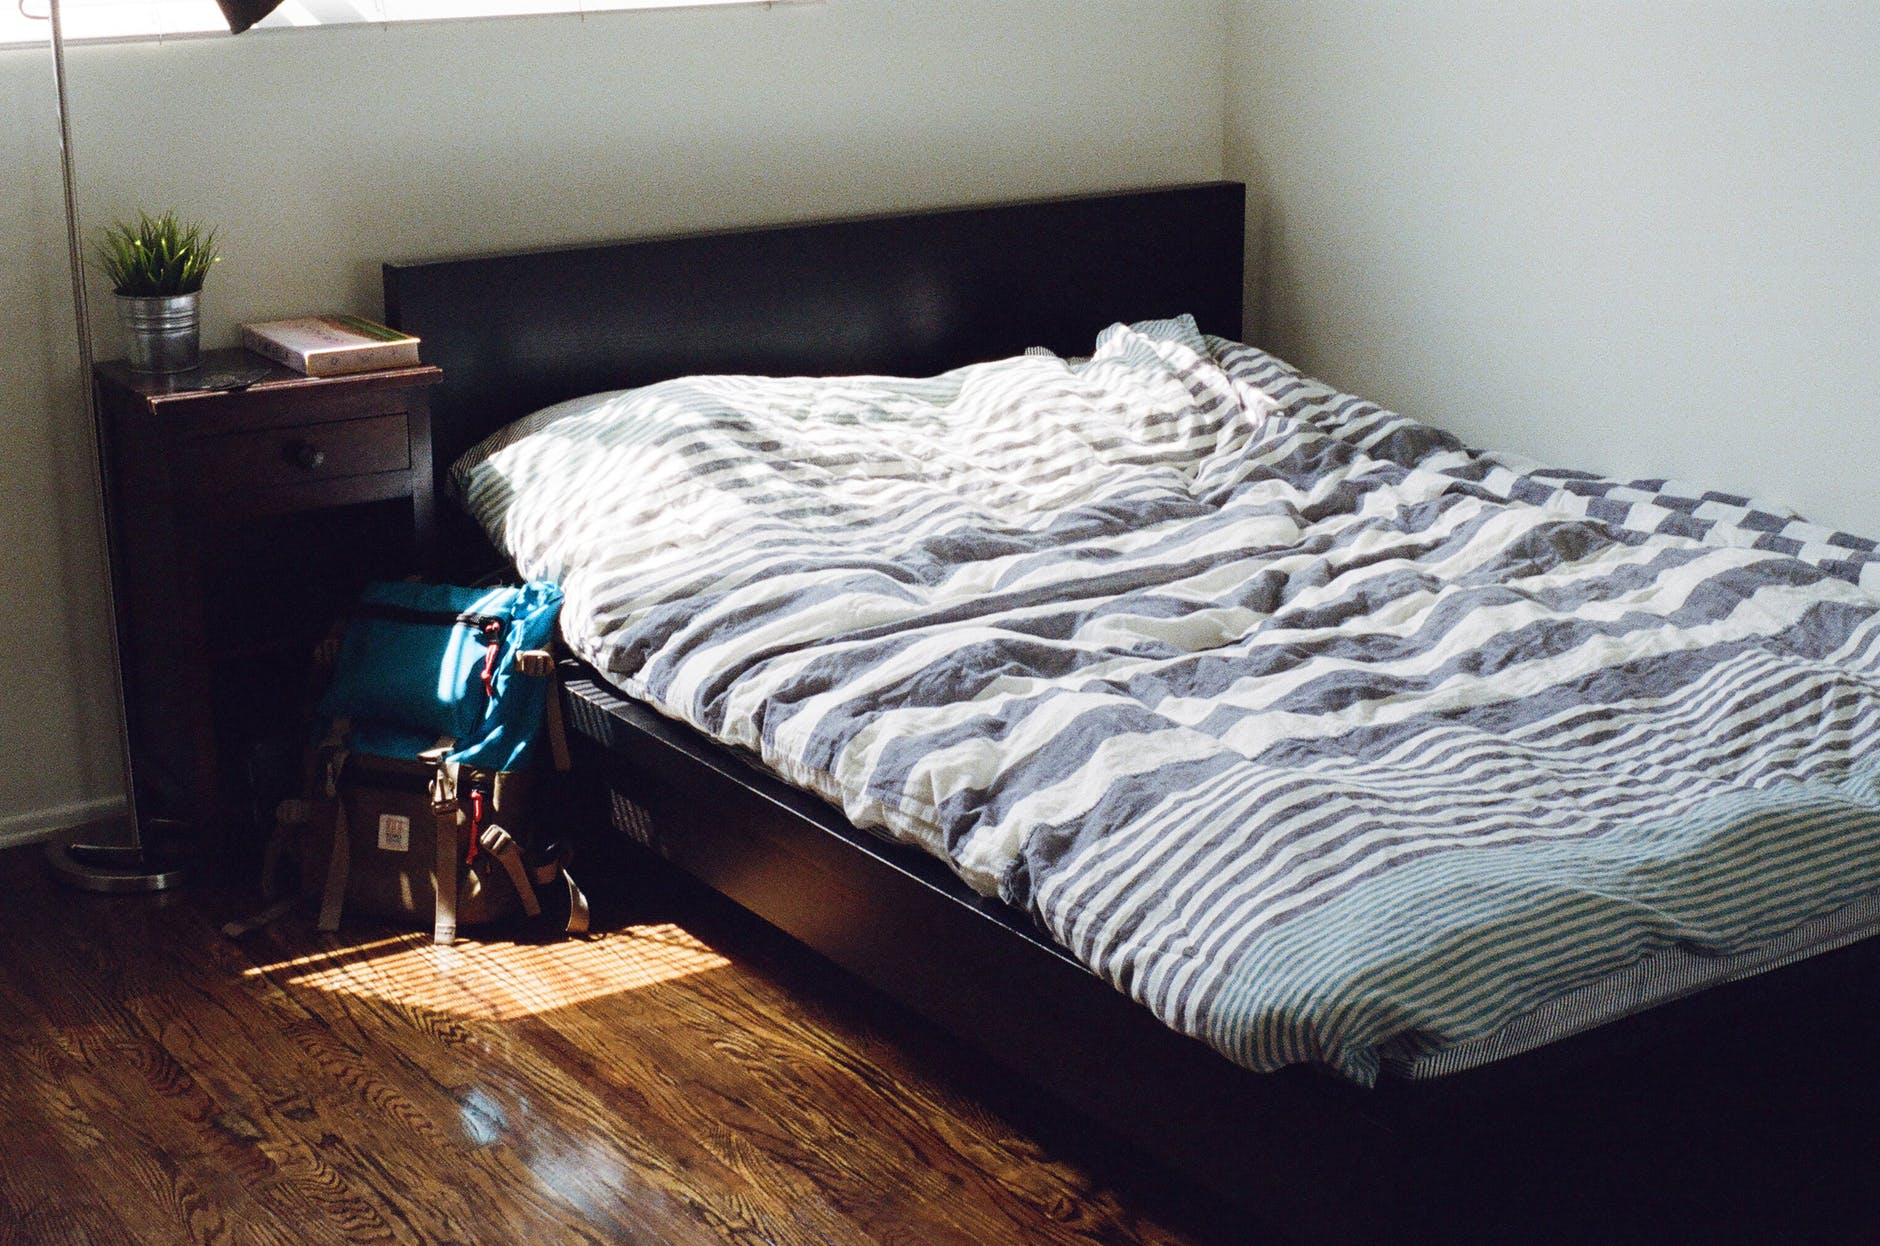 Bed made with comforter and bed side table